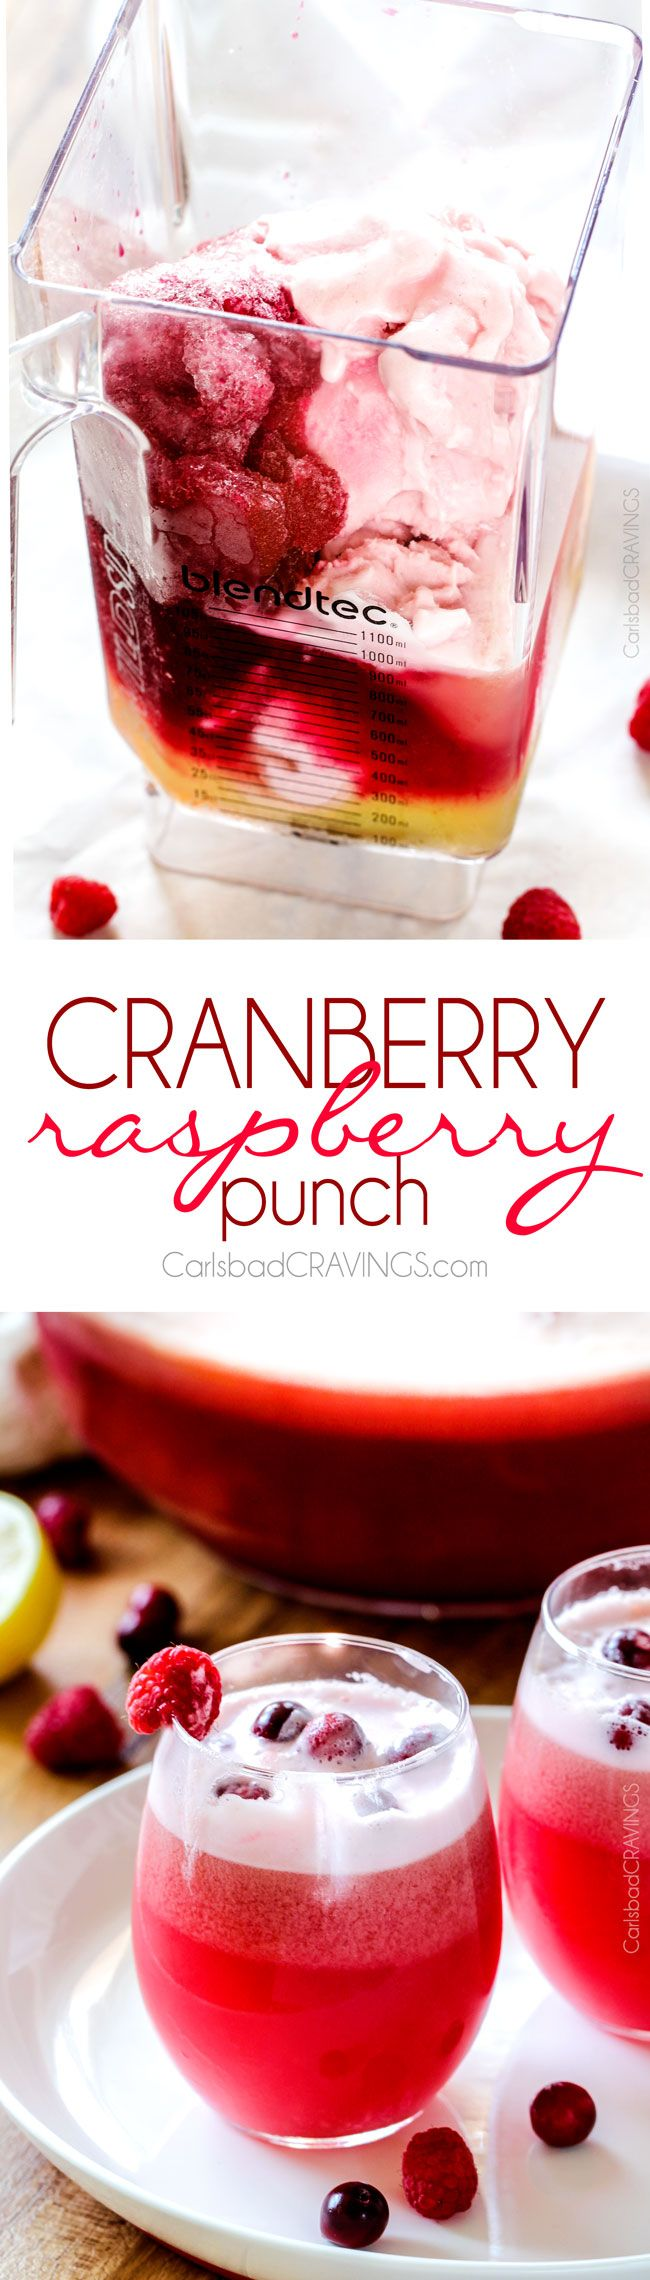 "EASY Family friendly, sweet and tangy Cranberry Raspberry Punch is the perfect addition to all your holidays and can be ready in minutes! AND over 25 ""pink"" recipe for breast cancer awareness."